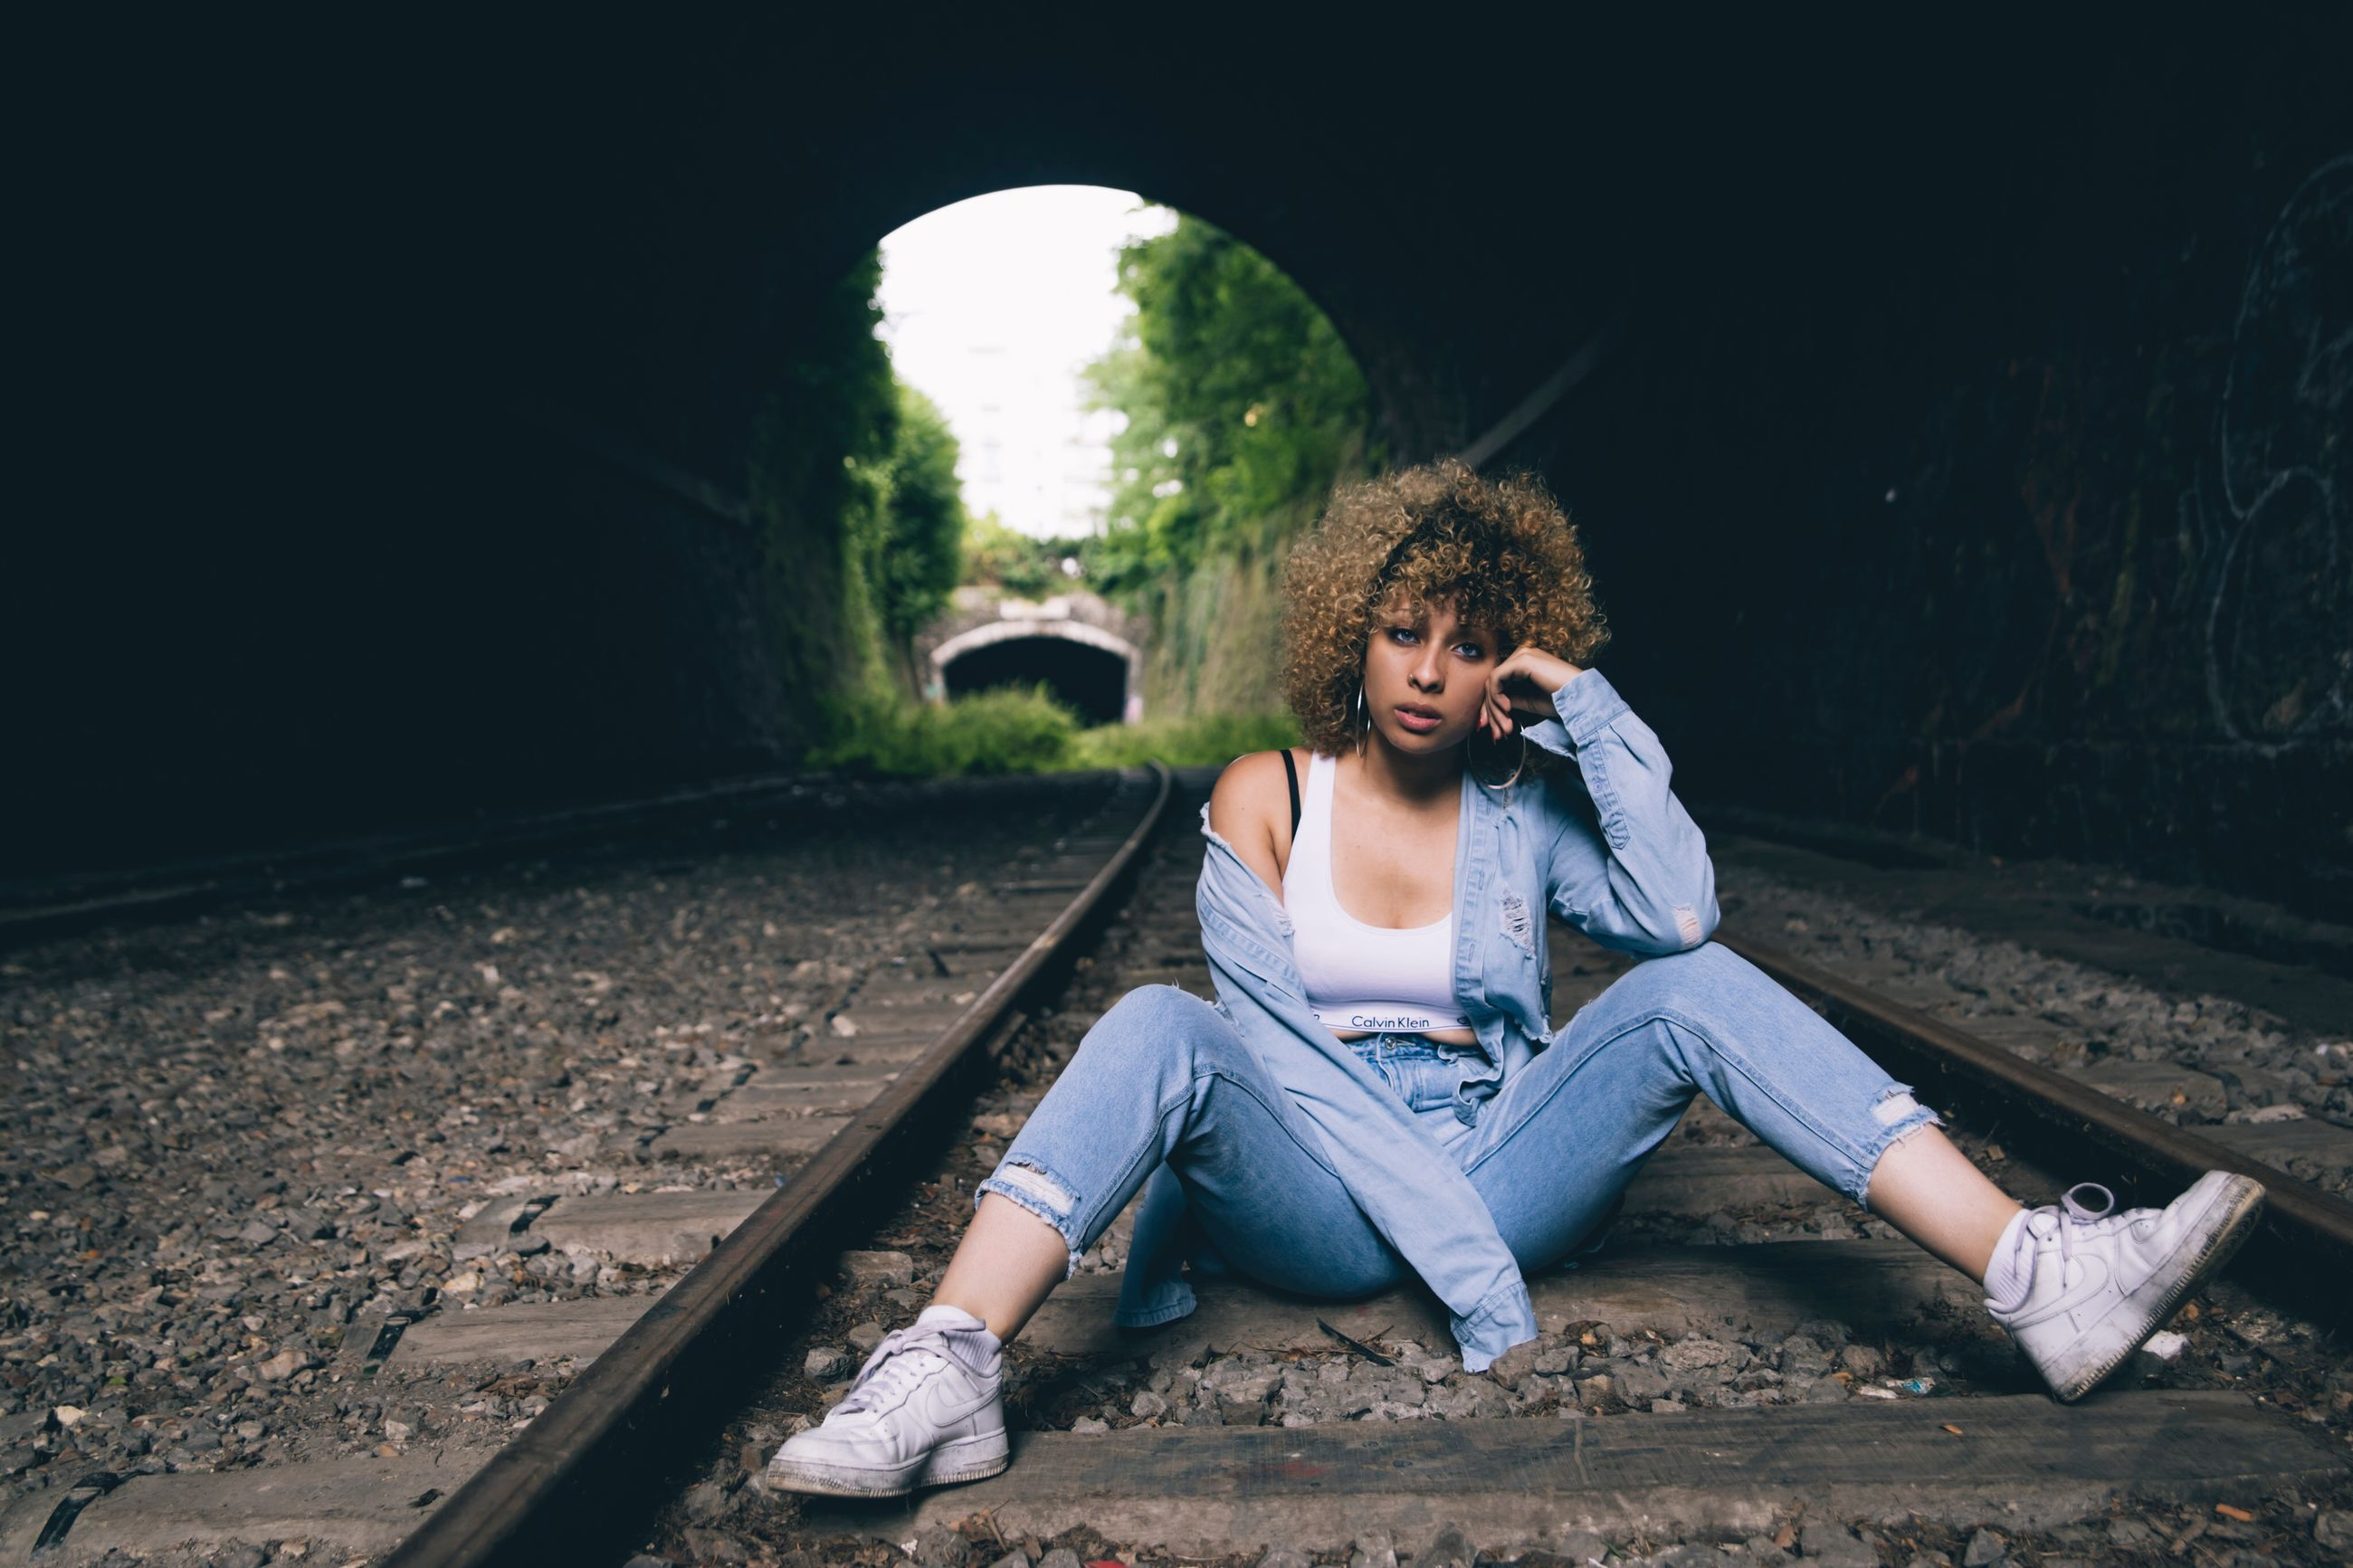 real people, one person, sitting, young adult, casual clothing, full length, young women, transportation, front view, day, lifestyles, outdoors, tensed, architecture